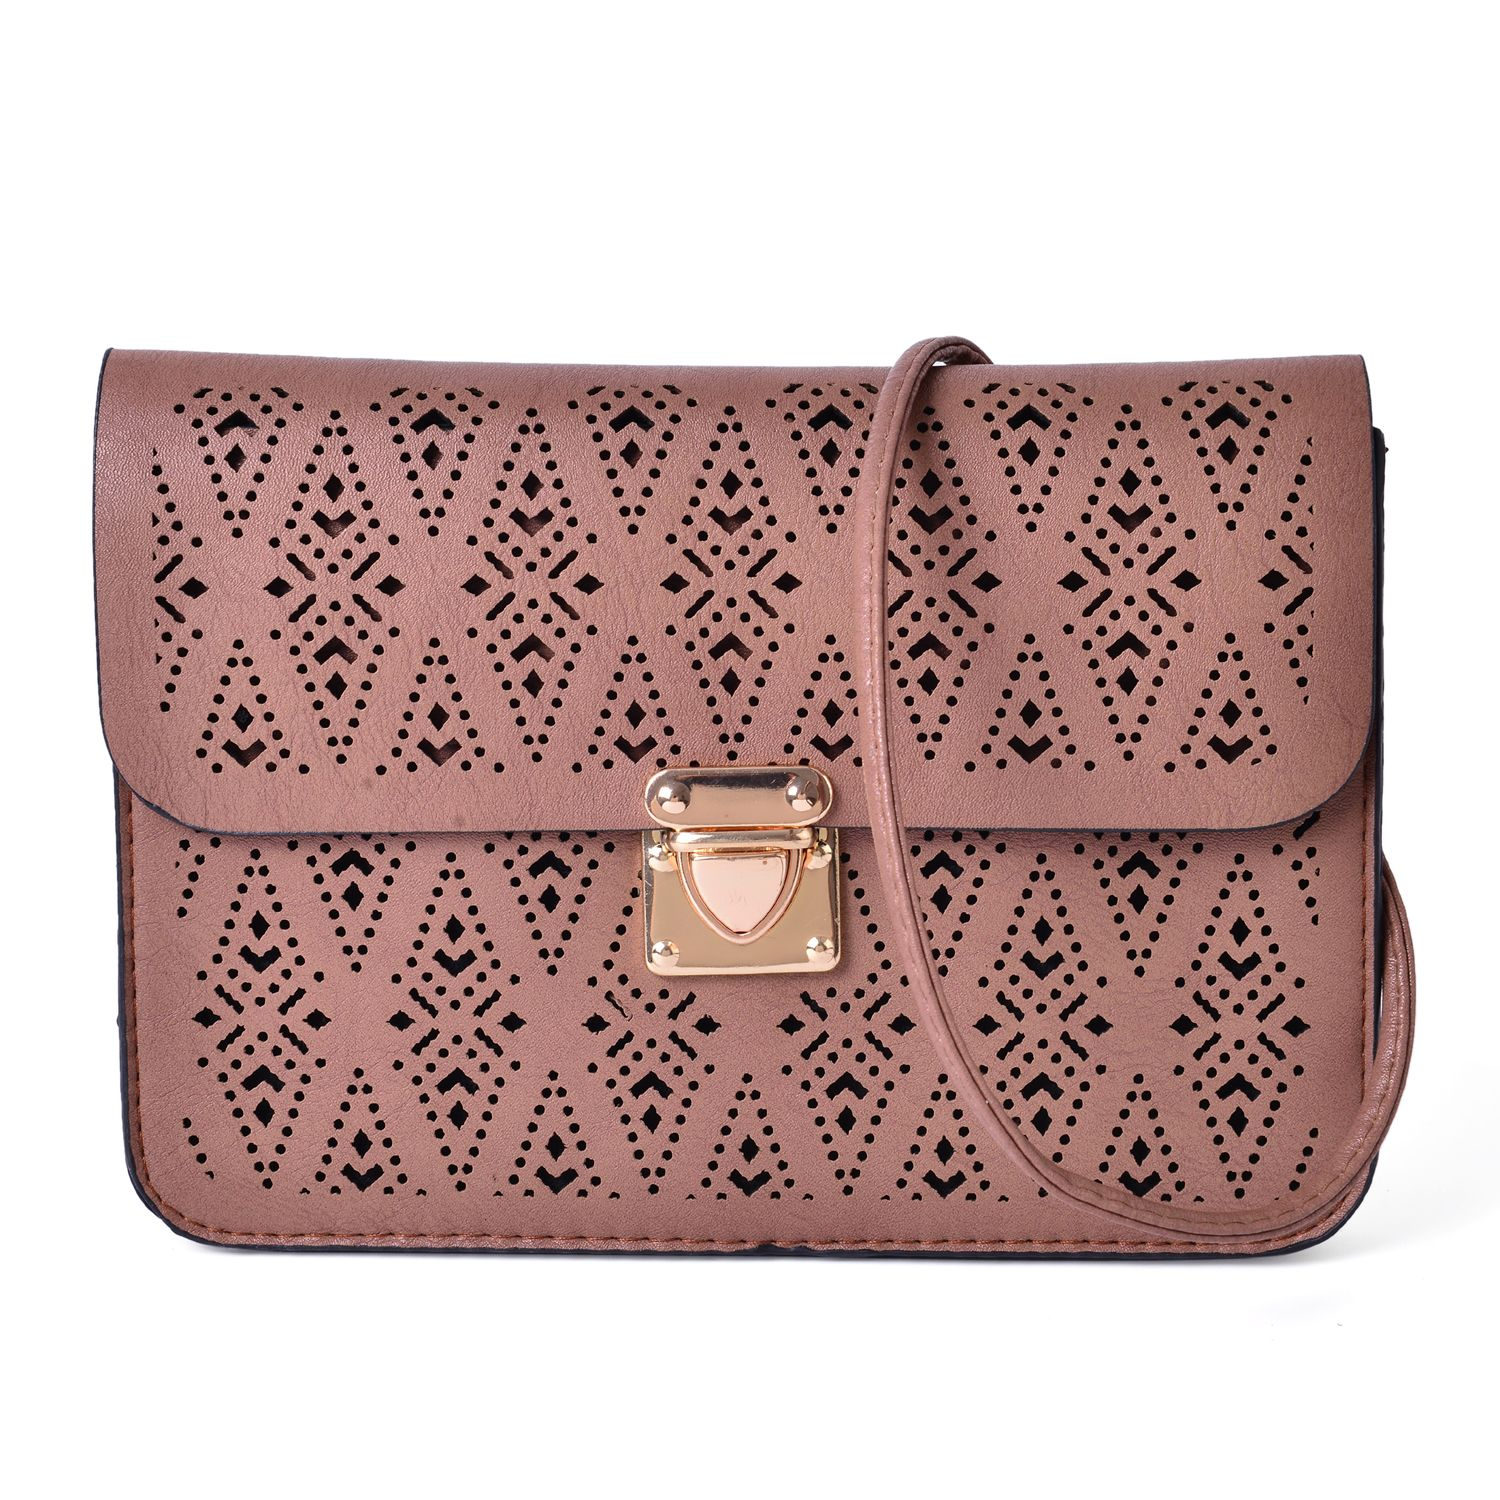 Brown Faux Leather Openwork Flap Over Crossbody Clutch Bag (8x6 in)